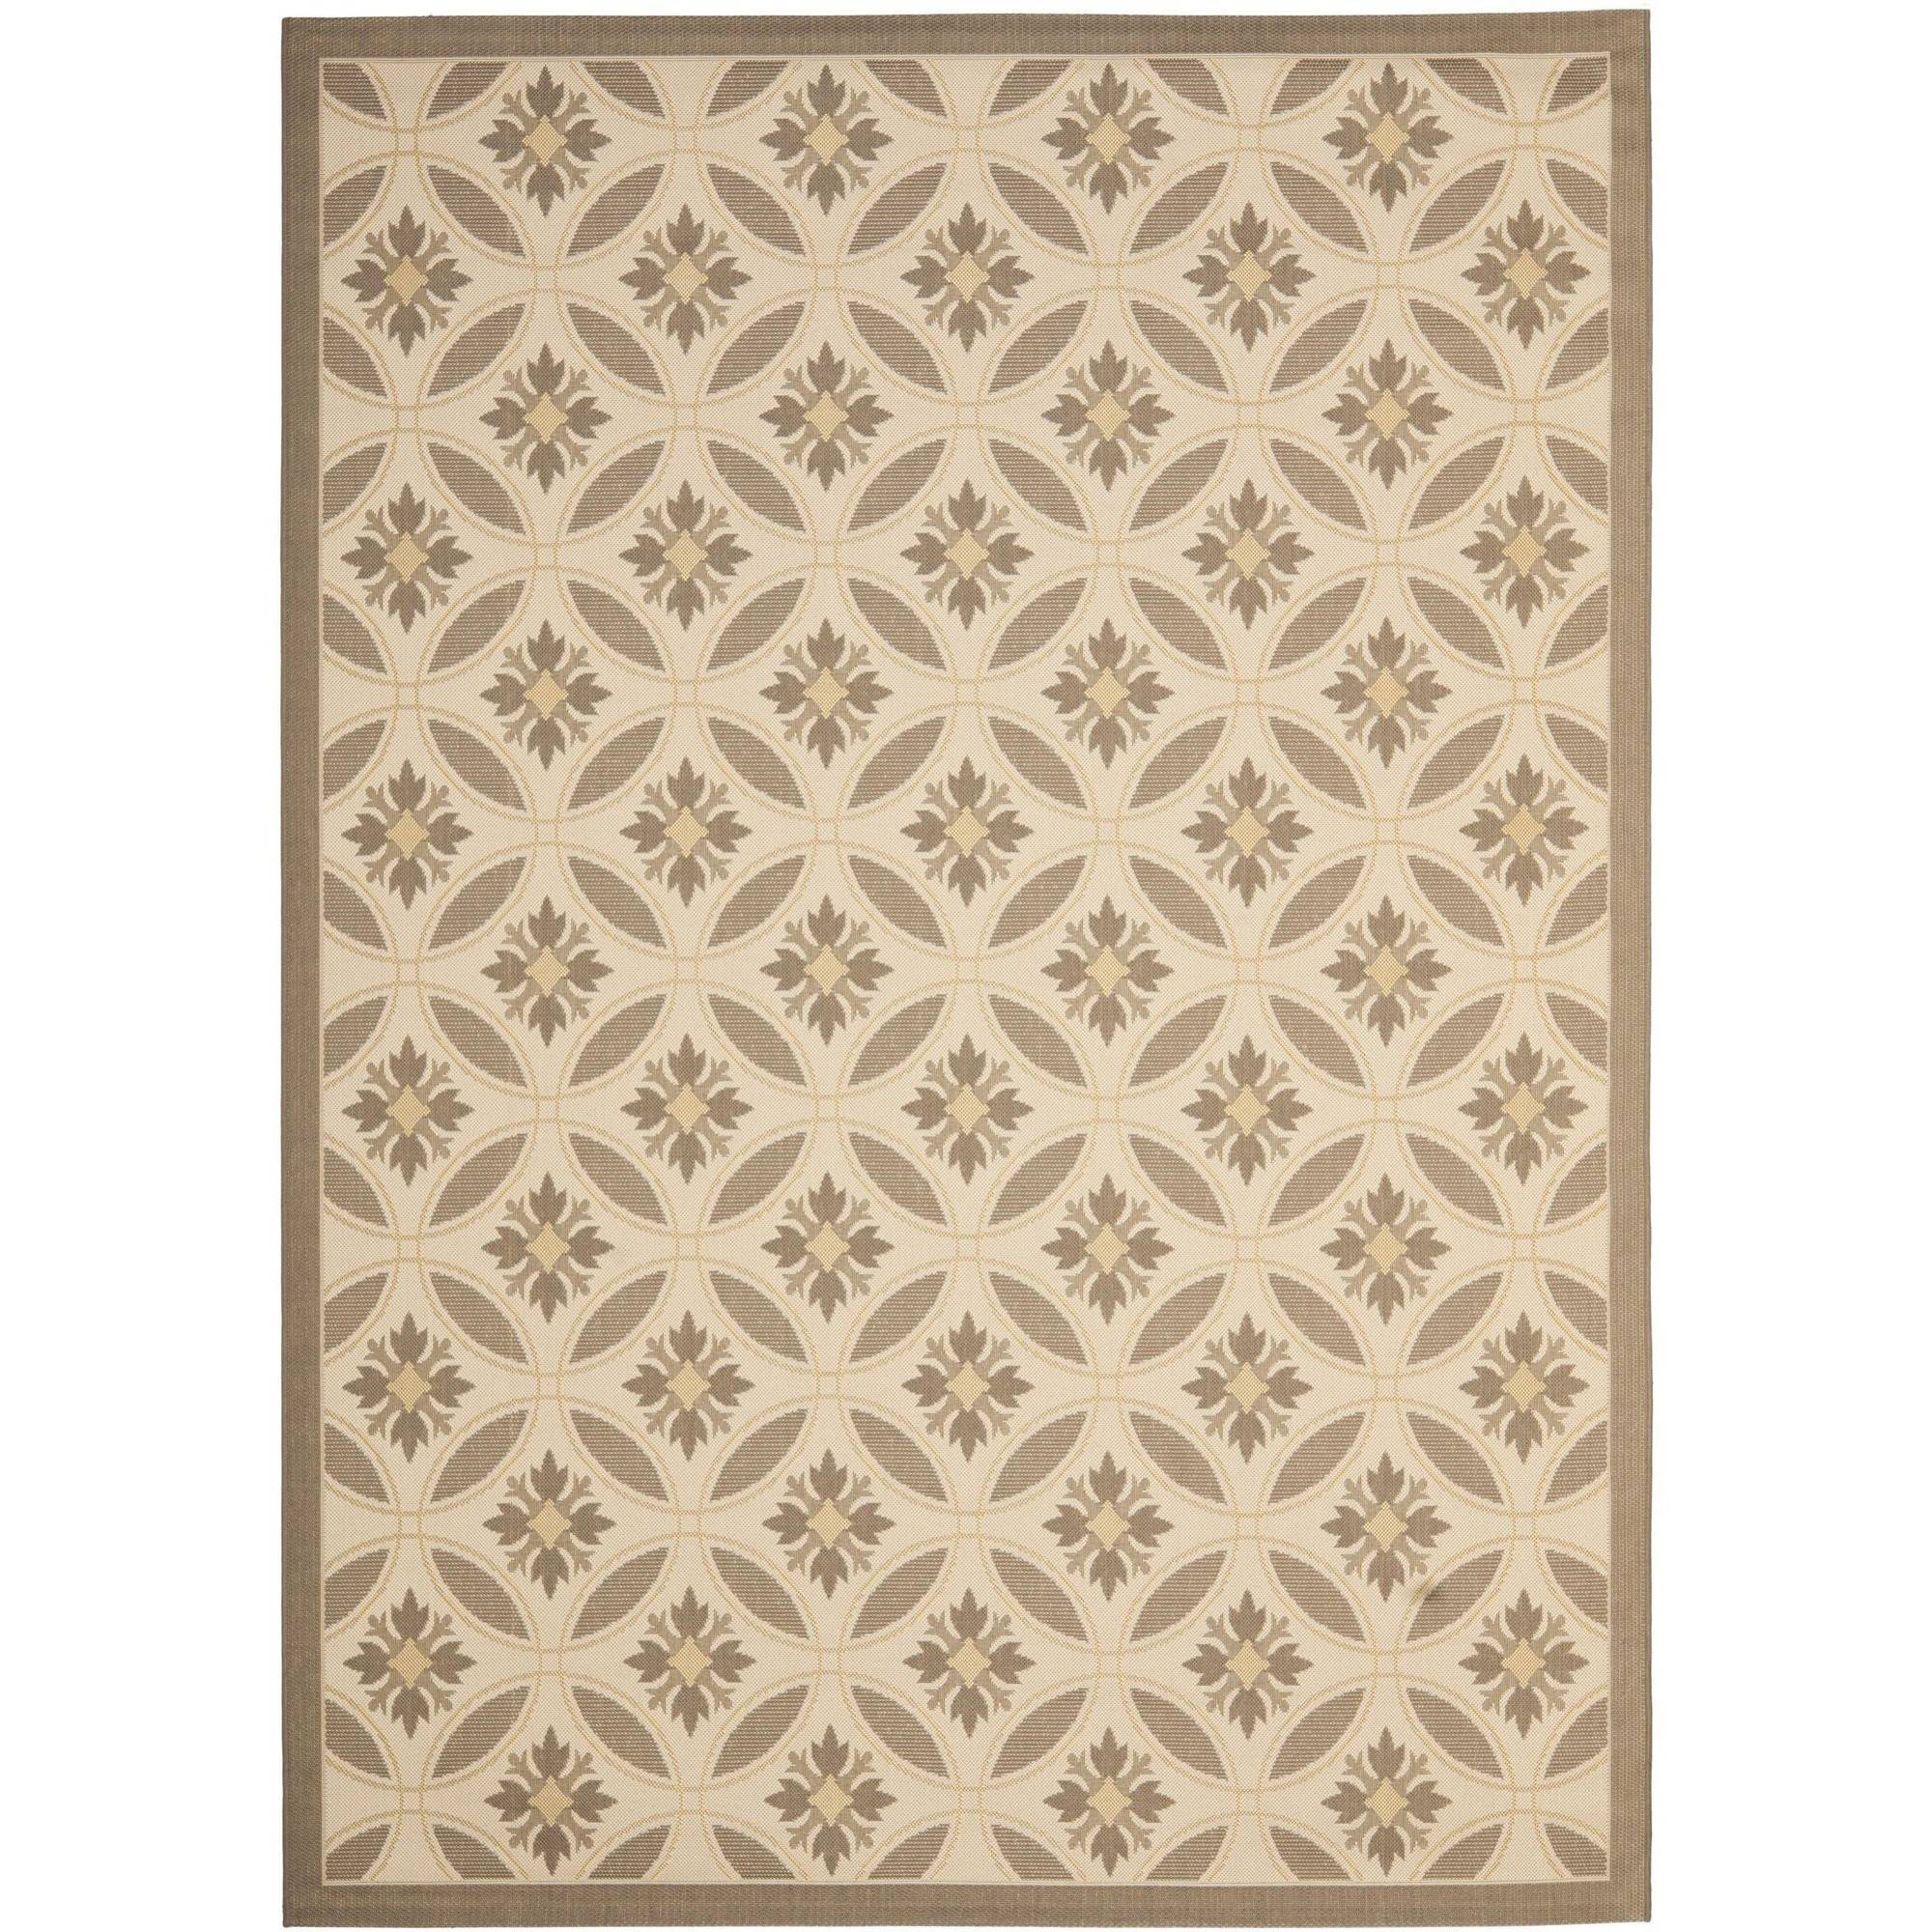 Safavieh Courtyard Rose Indoor/Outdoor Area Rug